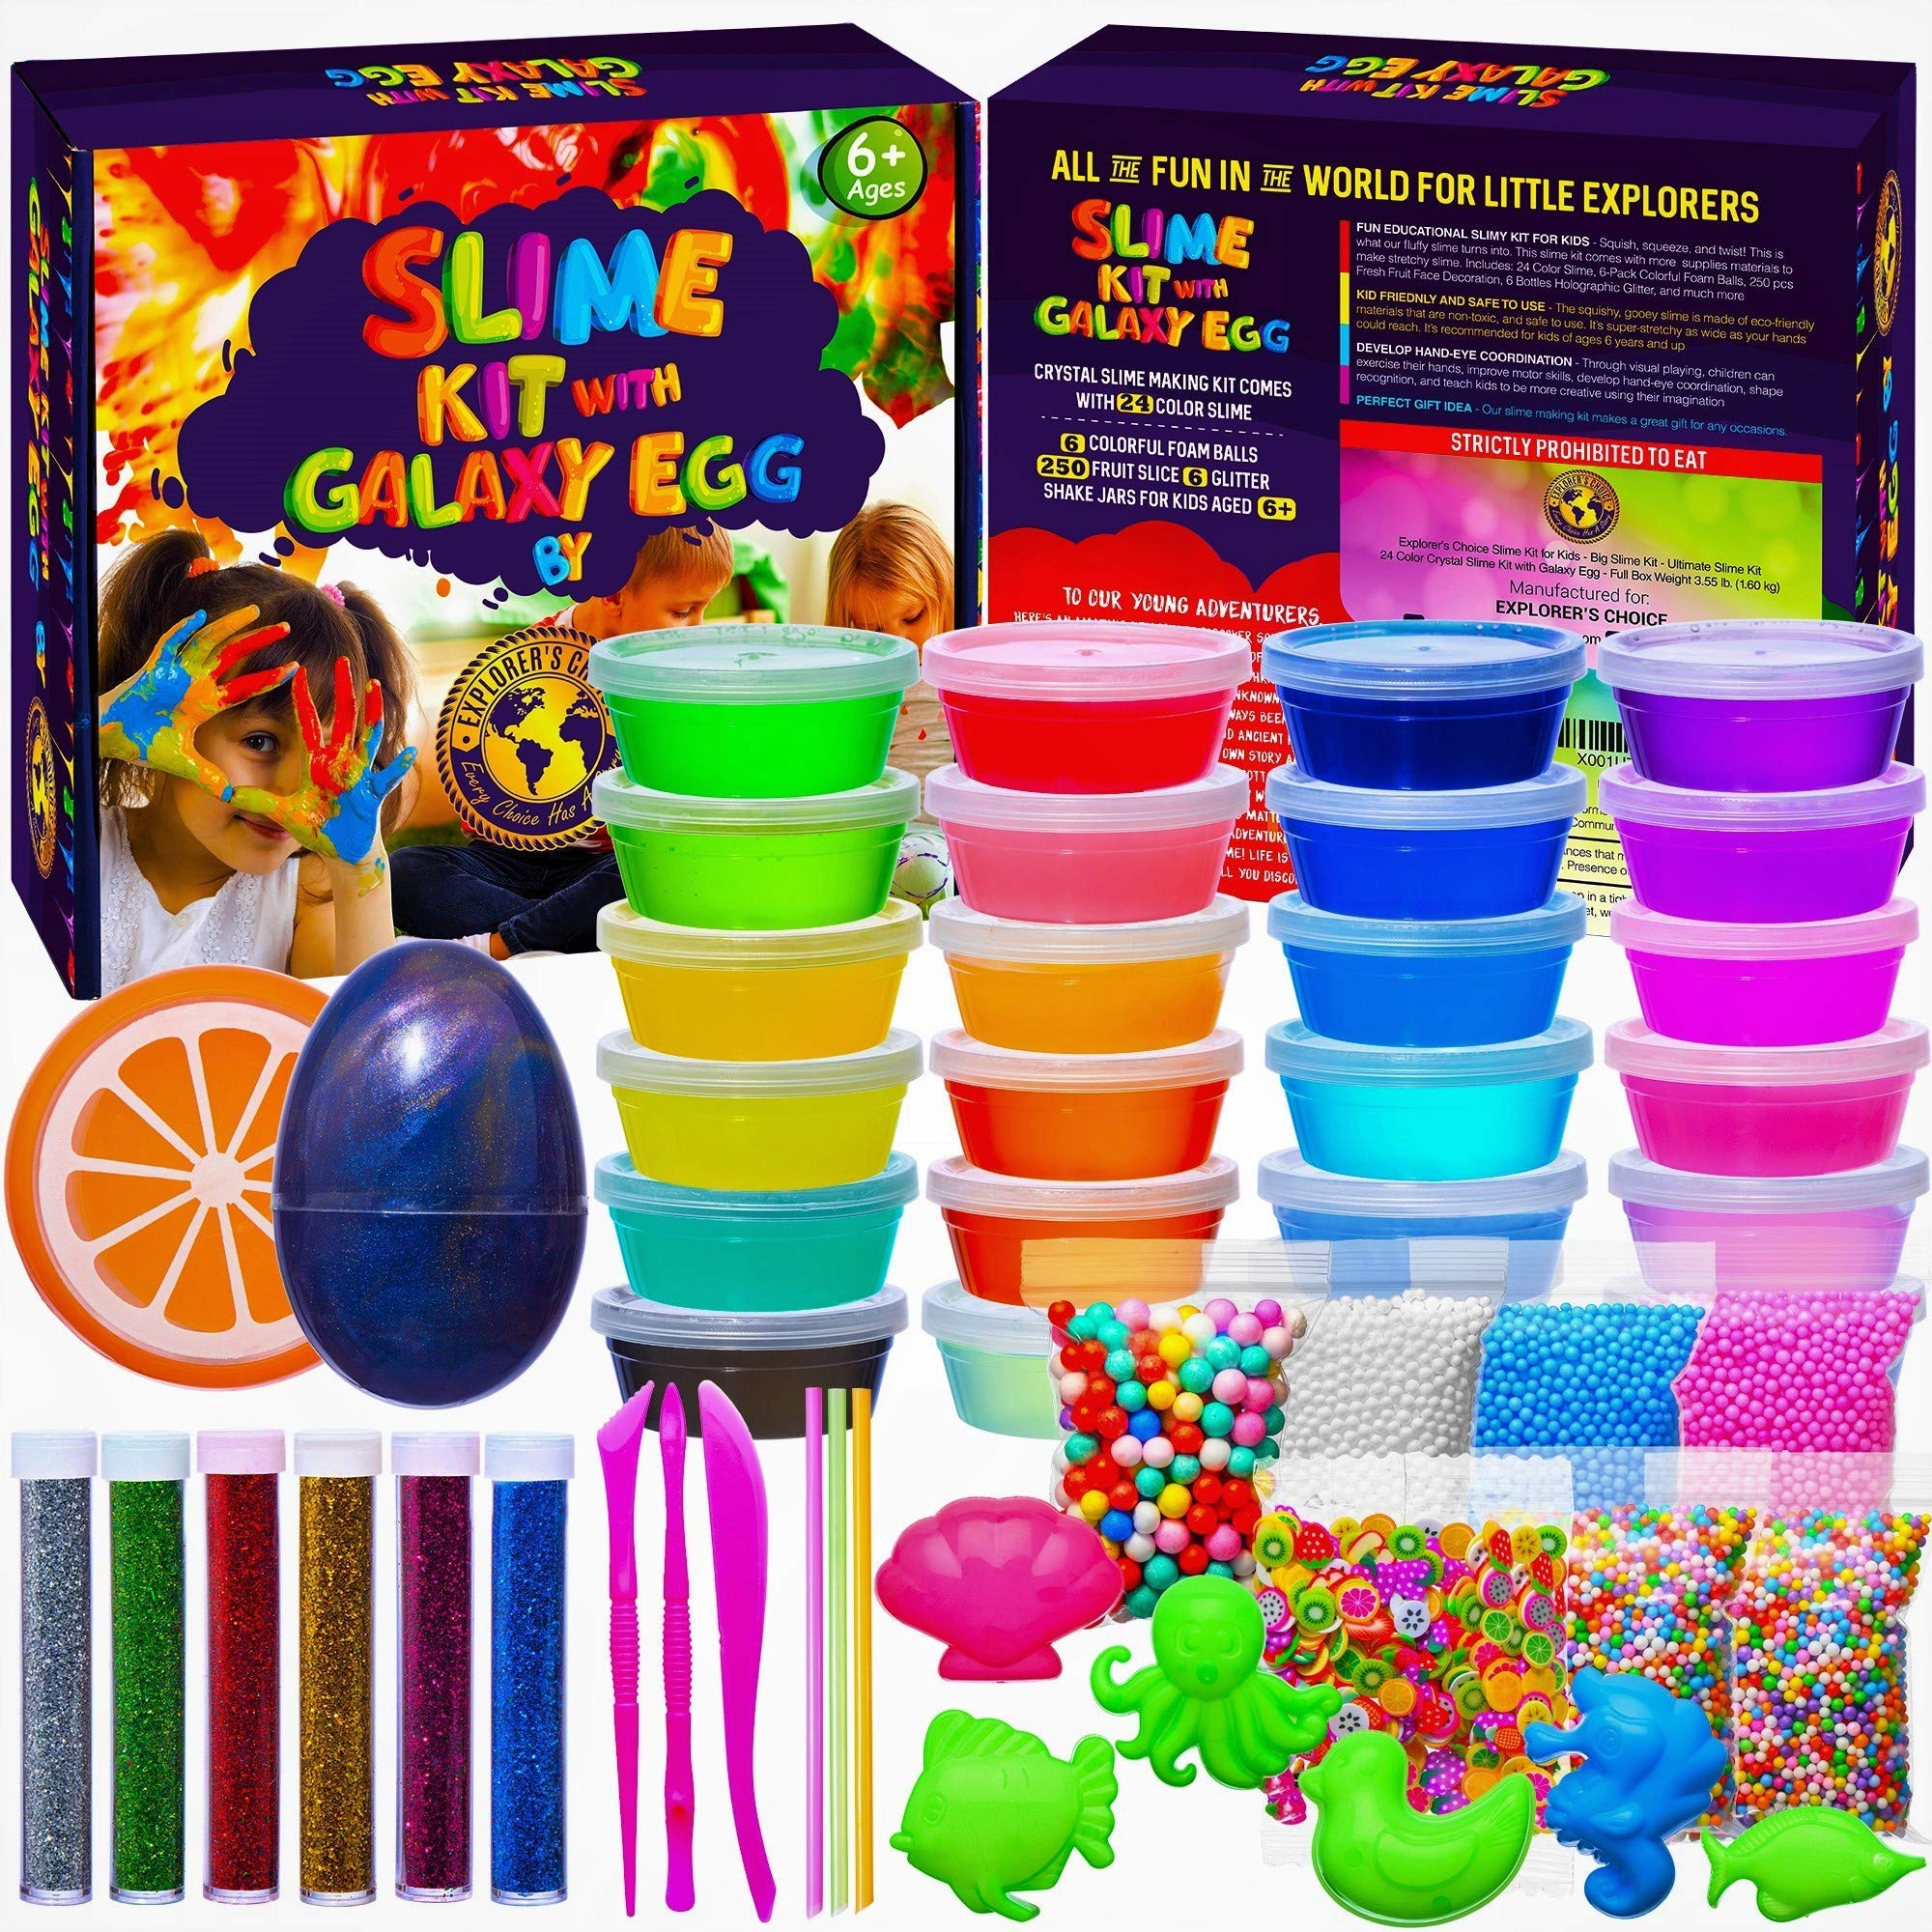 EXPLORER'S CHOICE Slime Kit for Girls and Boys - DIY Big Slime Kit 3.55 pounds - 24 Clear Slime Containers - Super Fun Toys for Girls and Boys - Slime Kits Supplies with Foam Beads by EXPLORER'S CHOICE